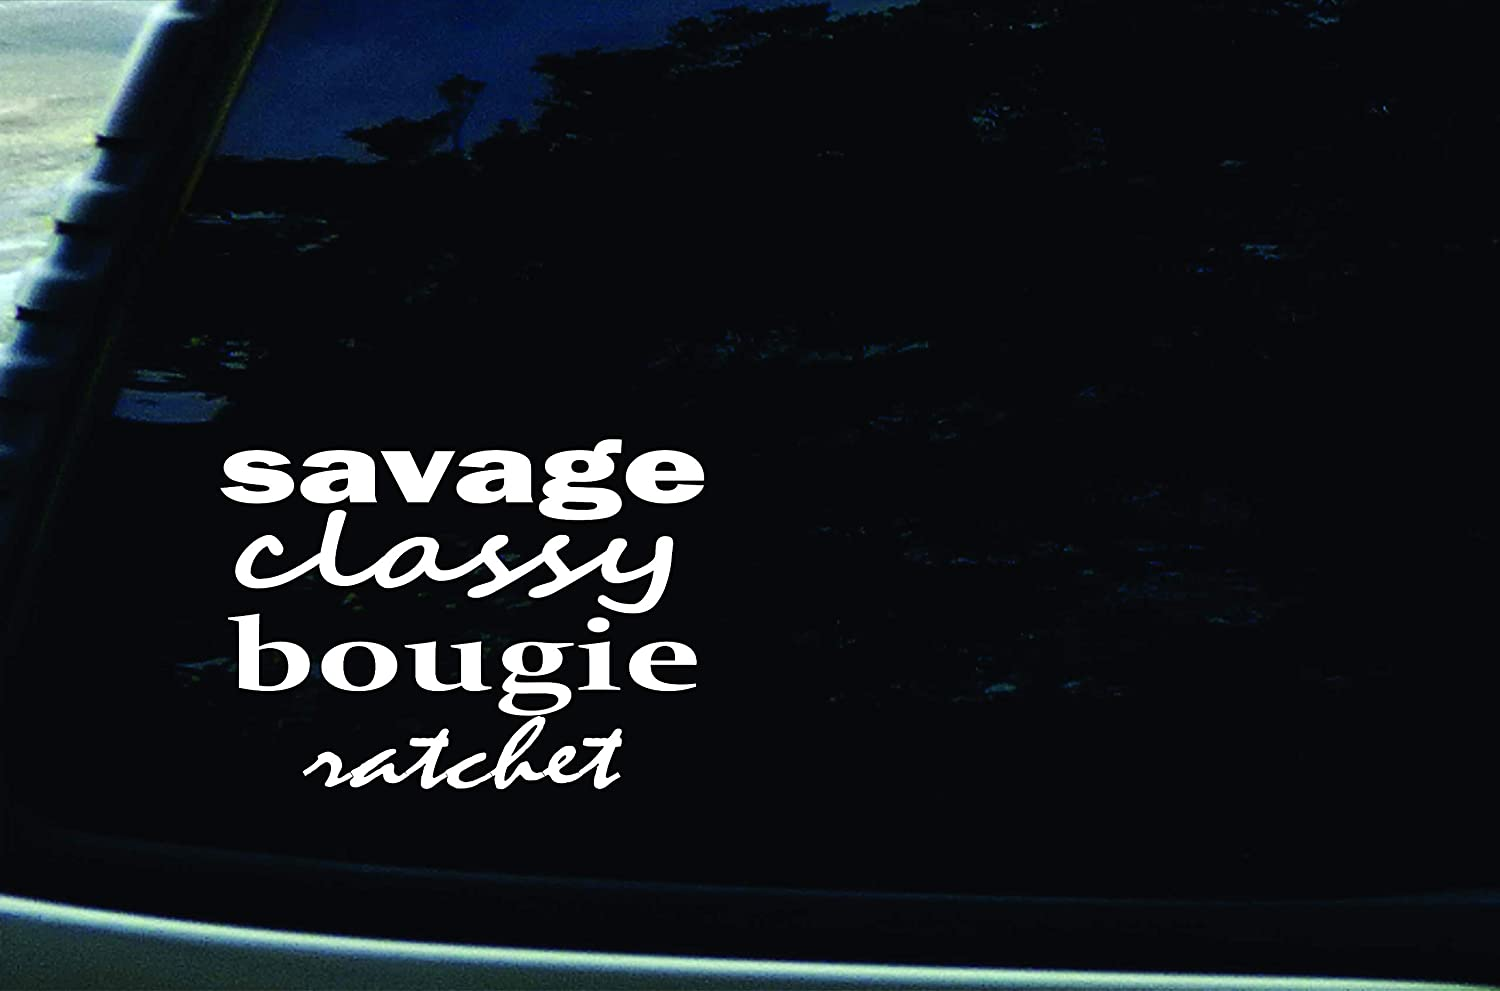 """Stonehouse Decals 6"""" X 4"""" Savage Classy Bougie Ratchet Funny Vinyl DIE Cut Decal for Your car, Truck, Window, Laptop, or Any Smooth Surface"""